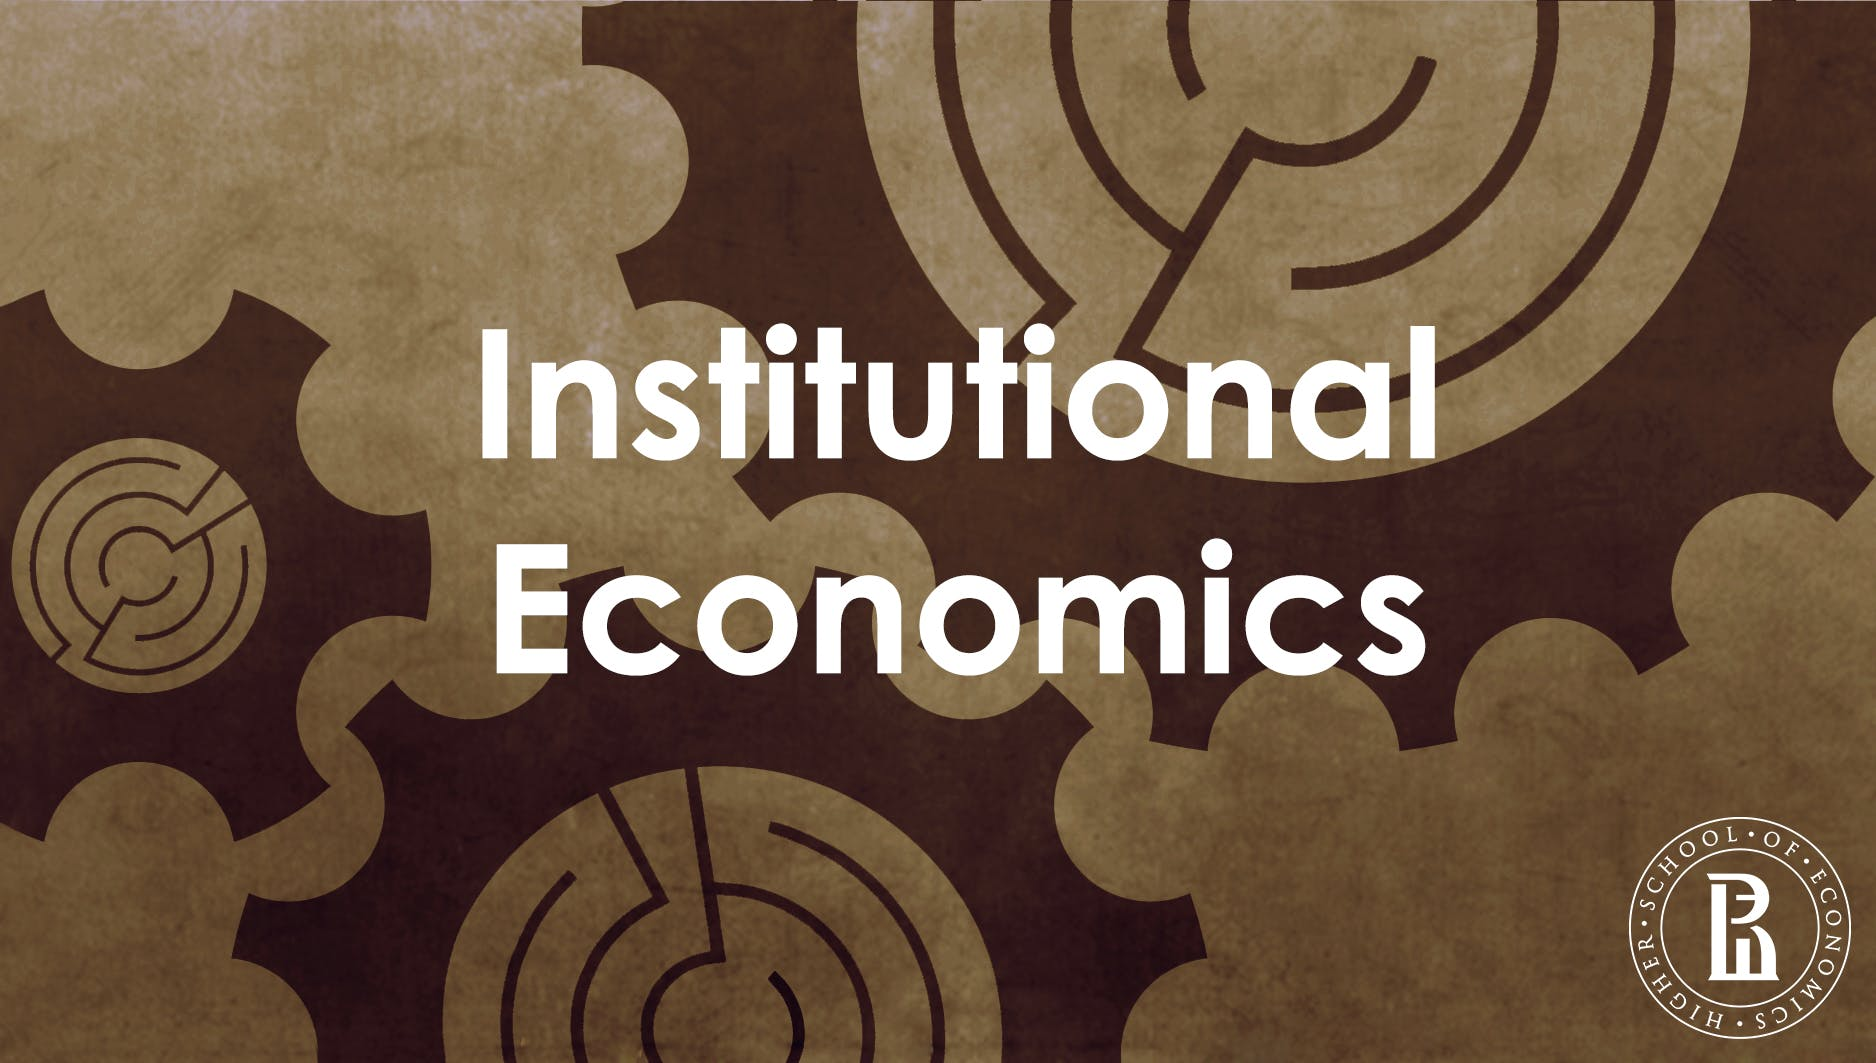 Институциональная экономика (Institutional economics)